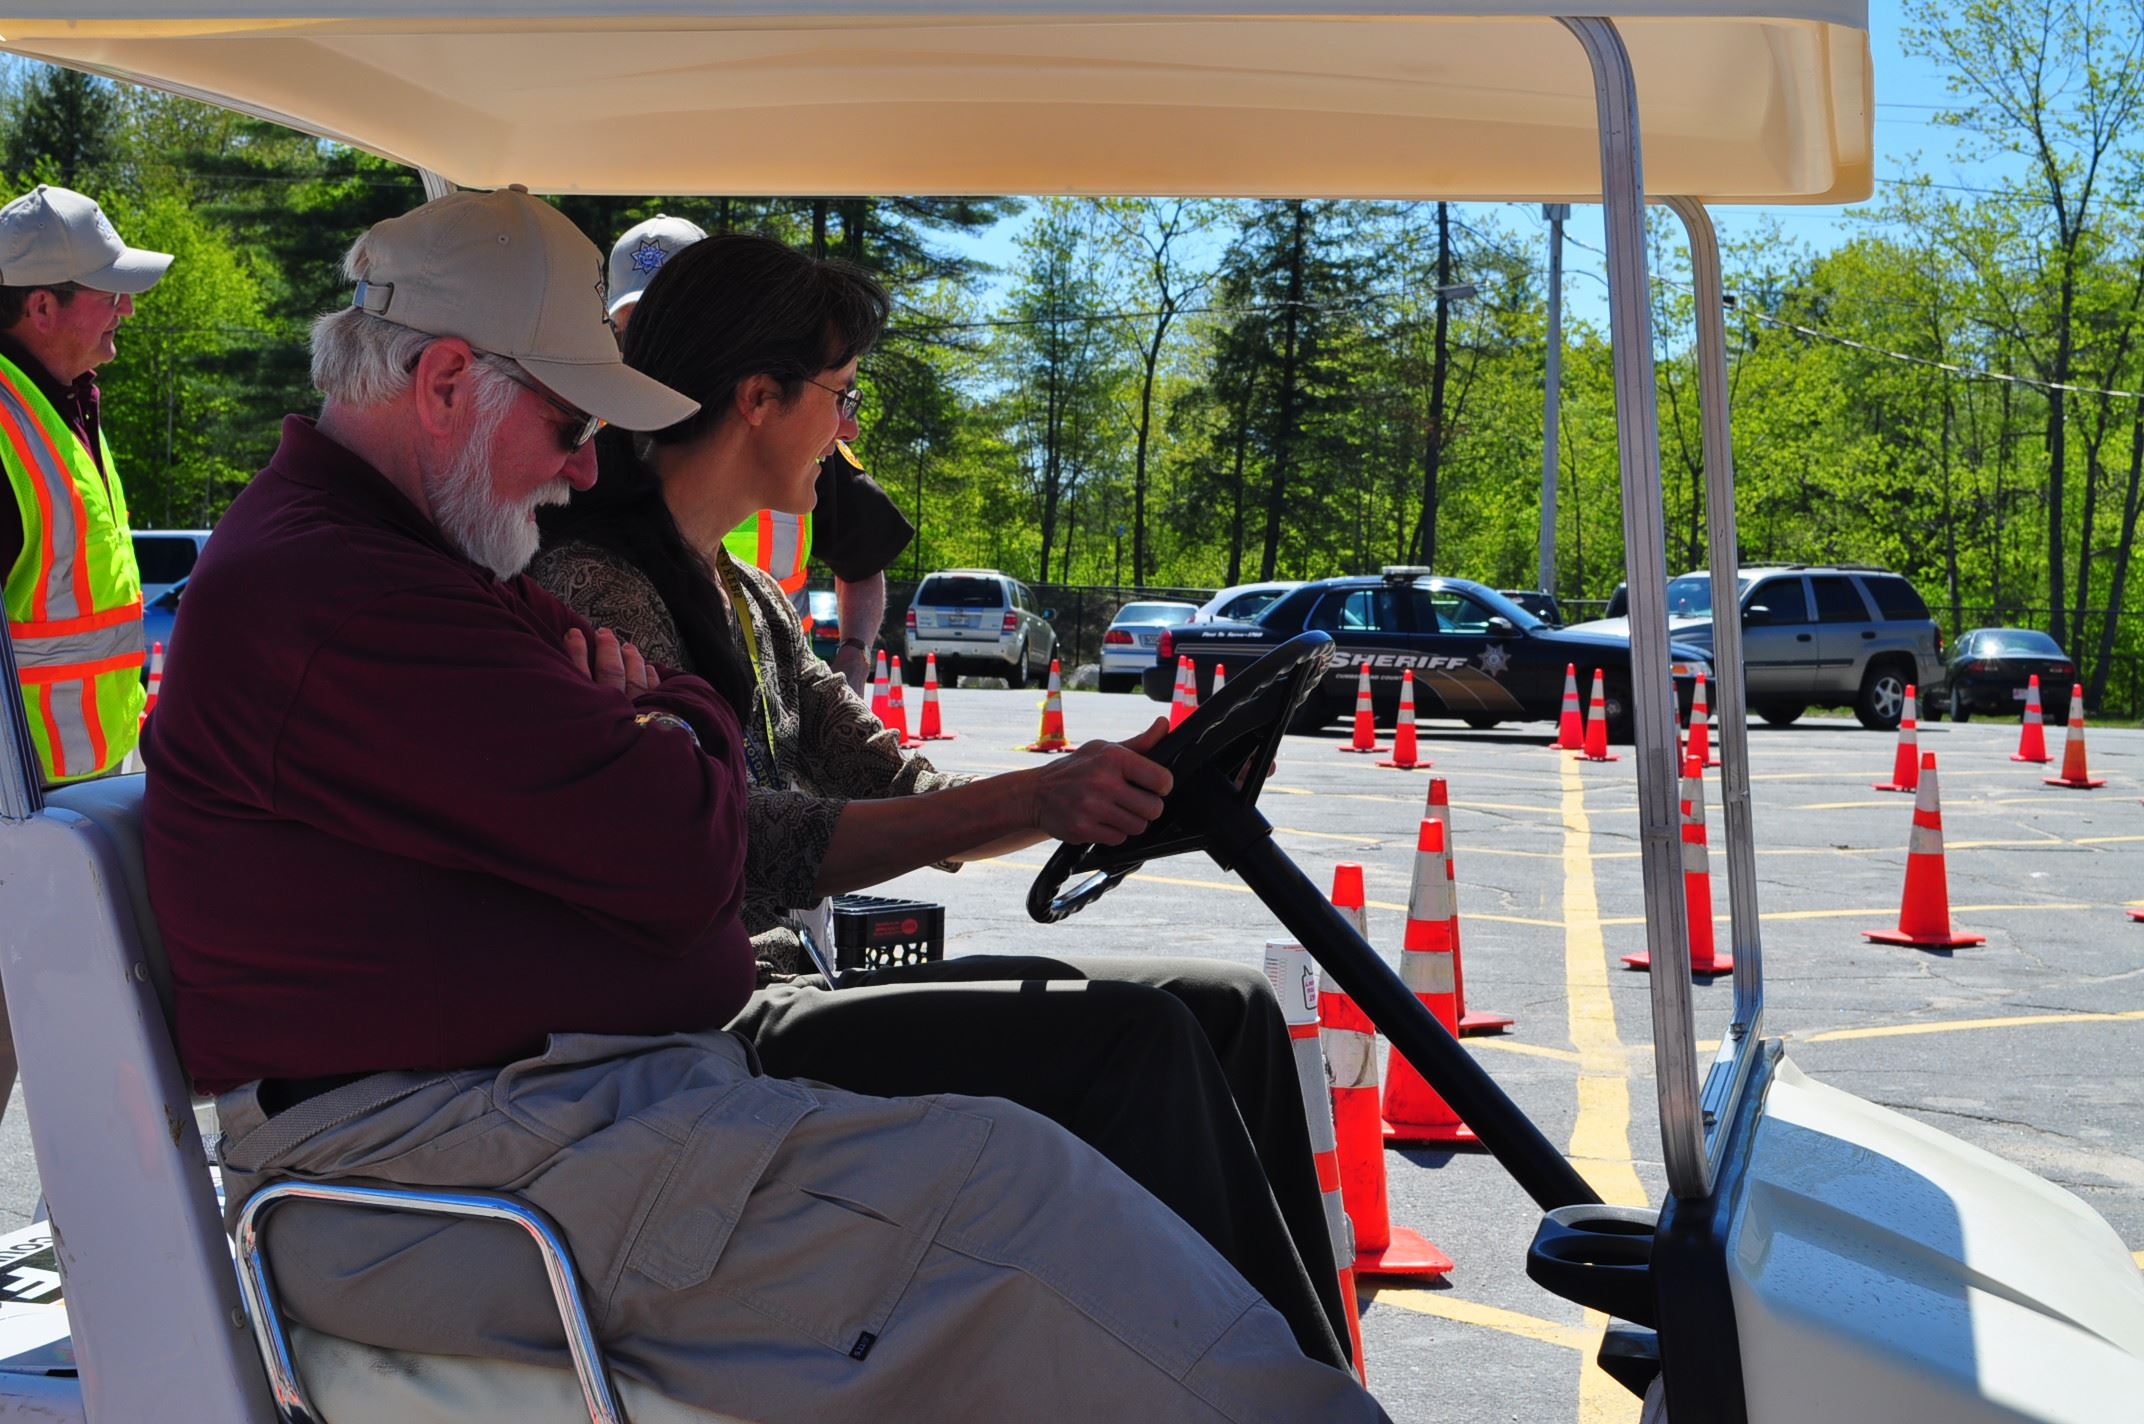 Two People Driving a Golf Cart in a Parking Lot